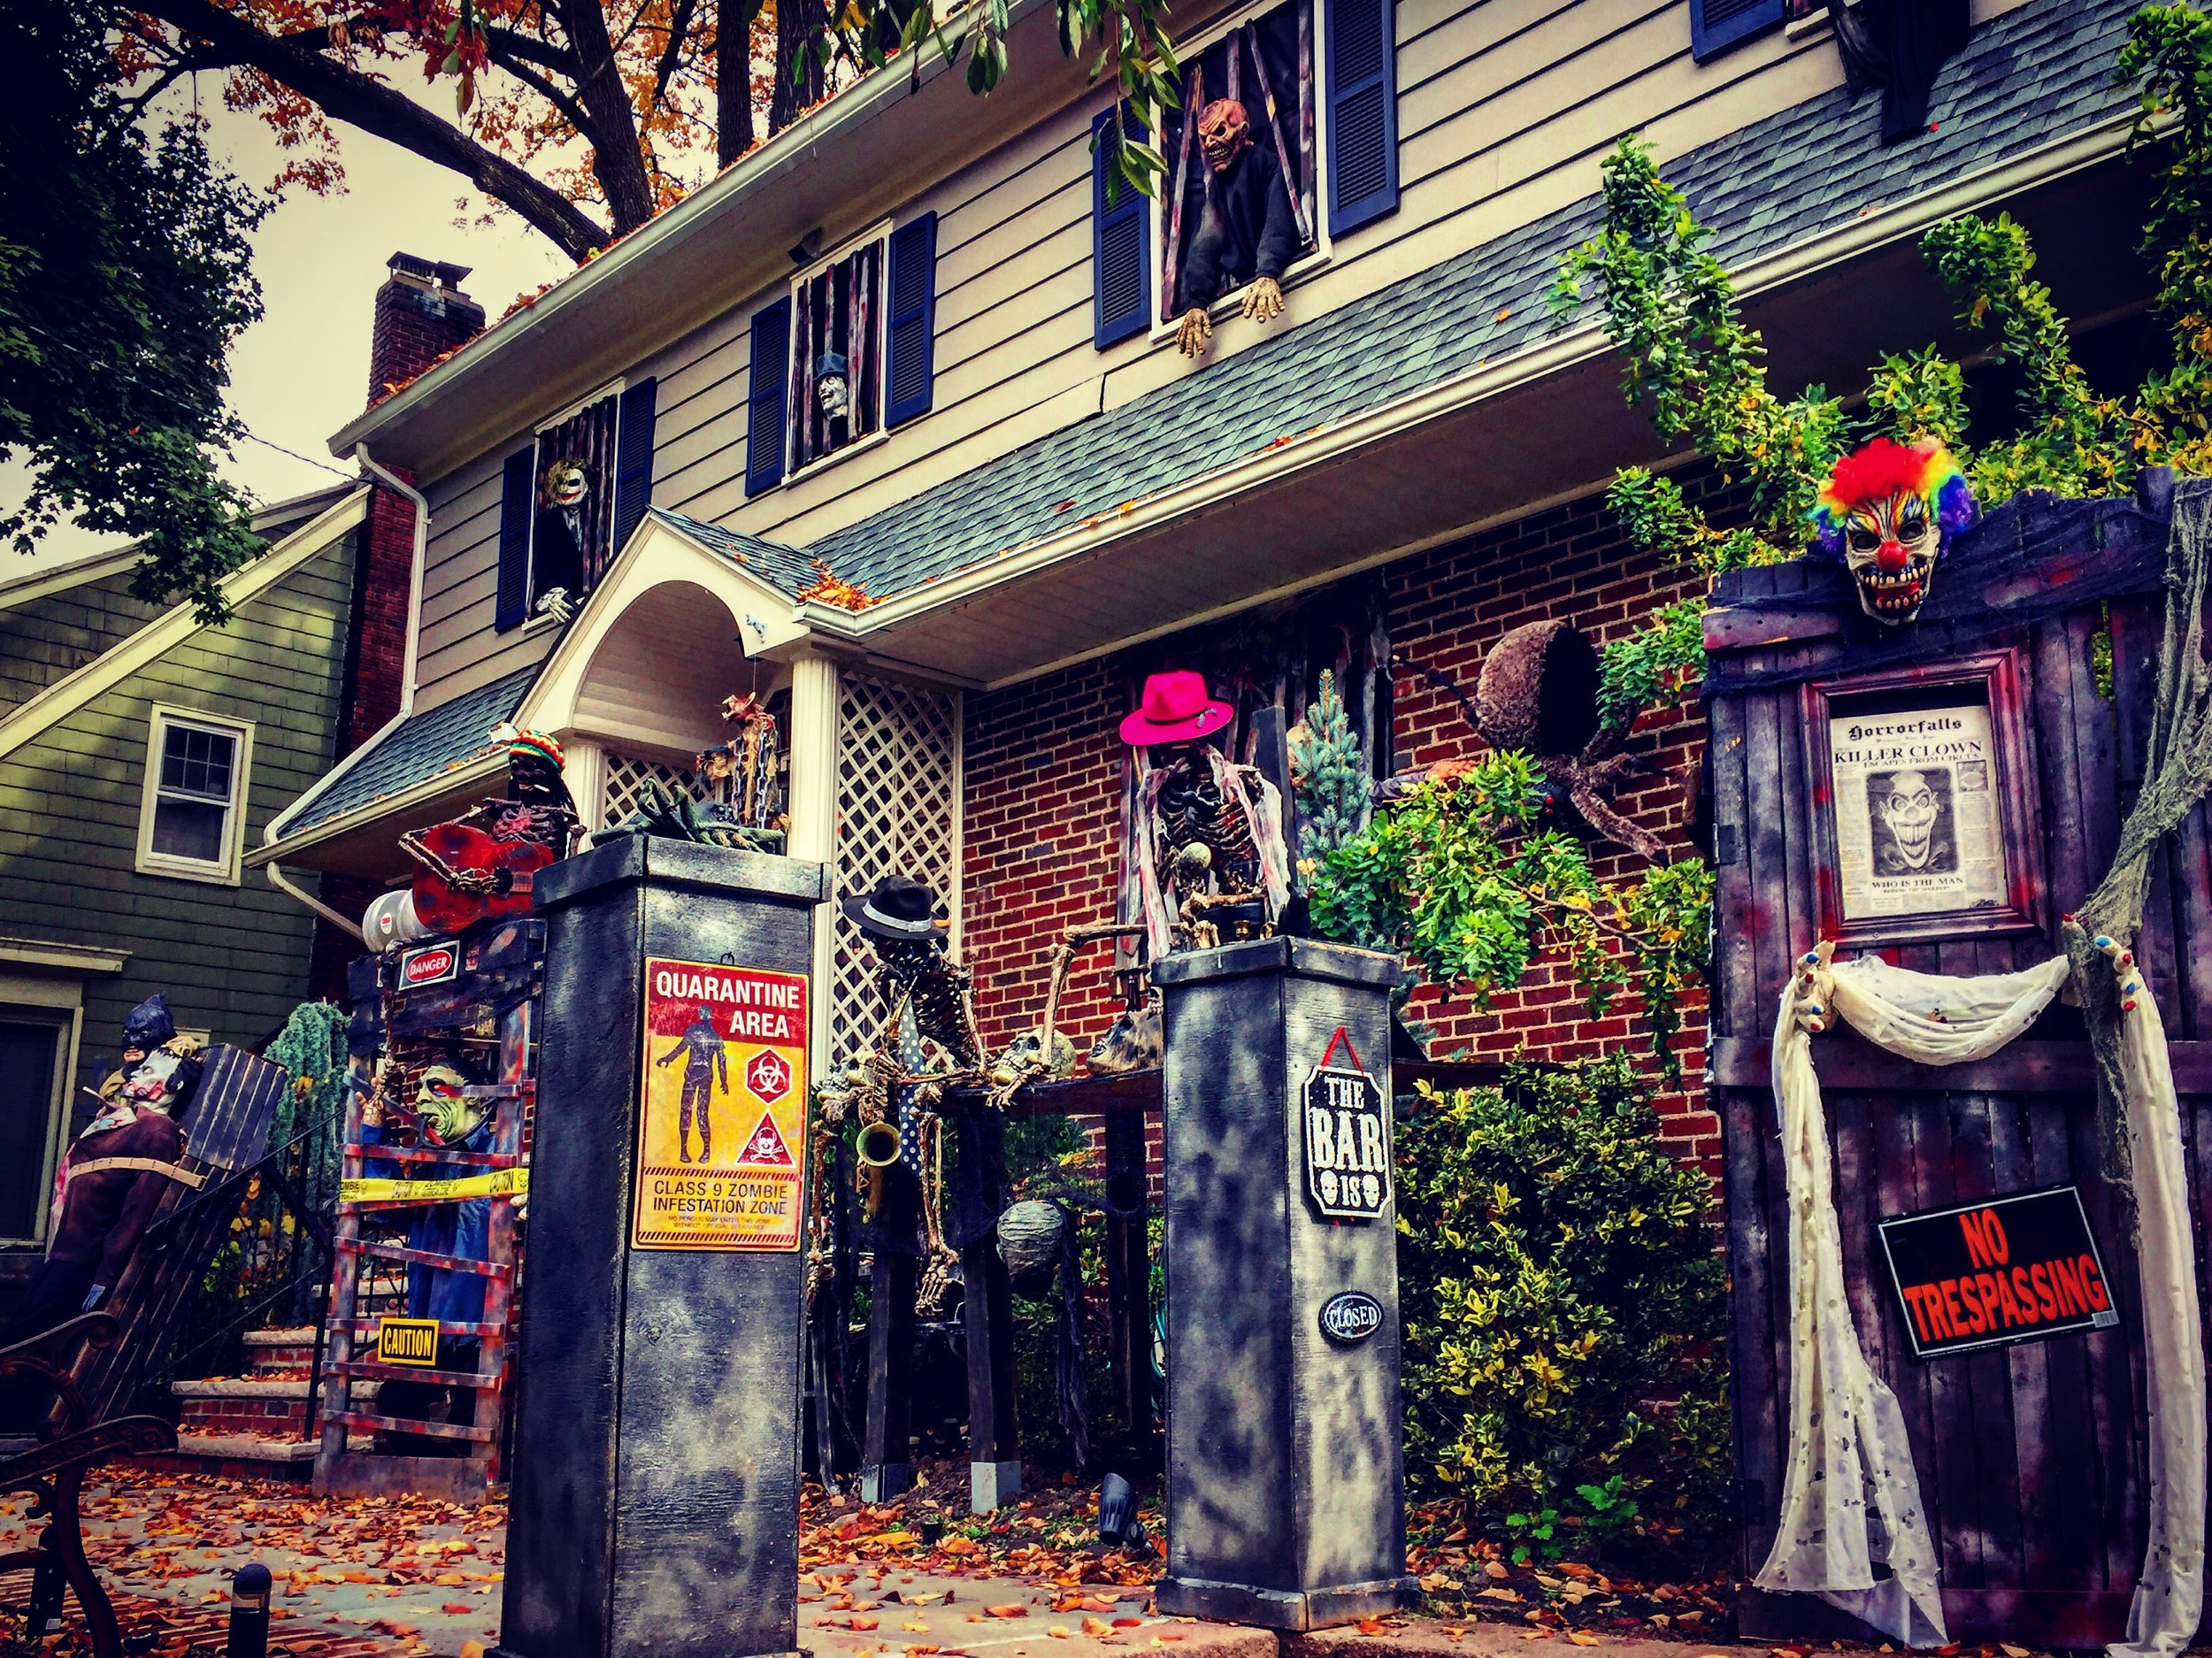 Sound effects and high quality set design at this Halloween house